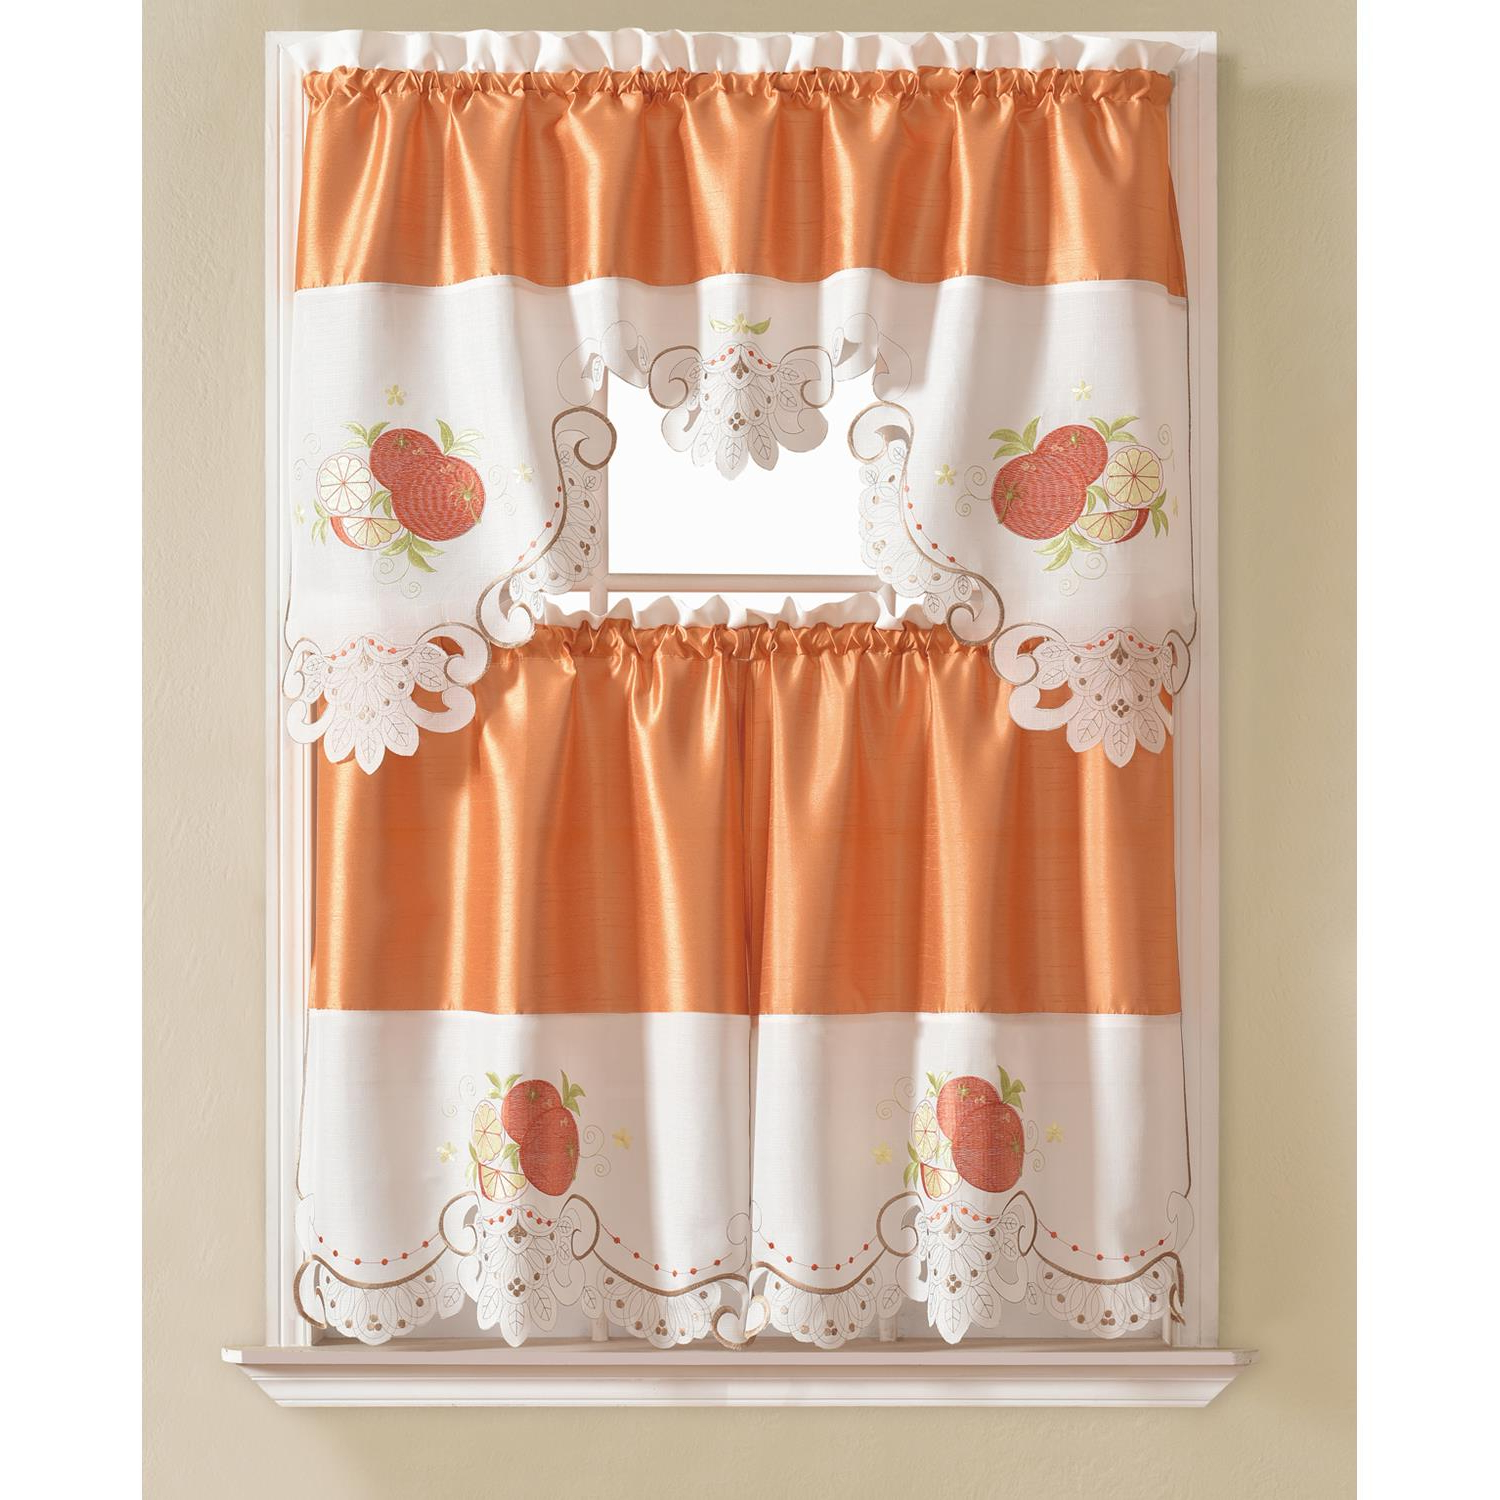 Most Up To Date Urban Embroidered Tier And Valance Kitchen Curtain Tier Sets In Details About Noble Embroidered Orange Tier And Valance Kitchen Curtain Set (Gallery 6 of 20)